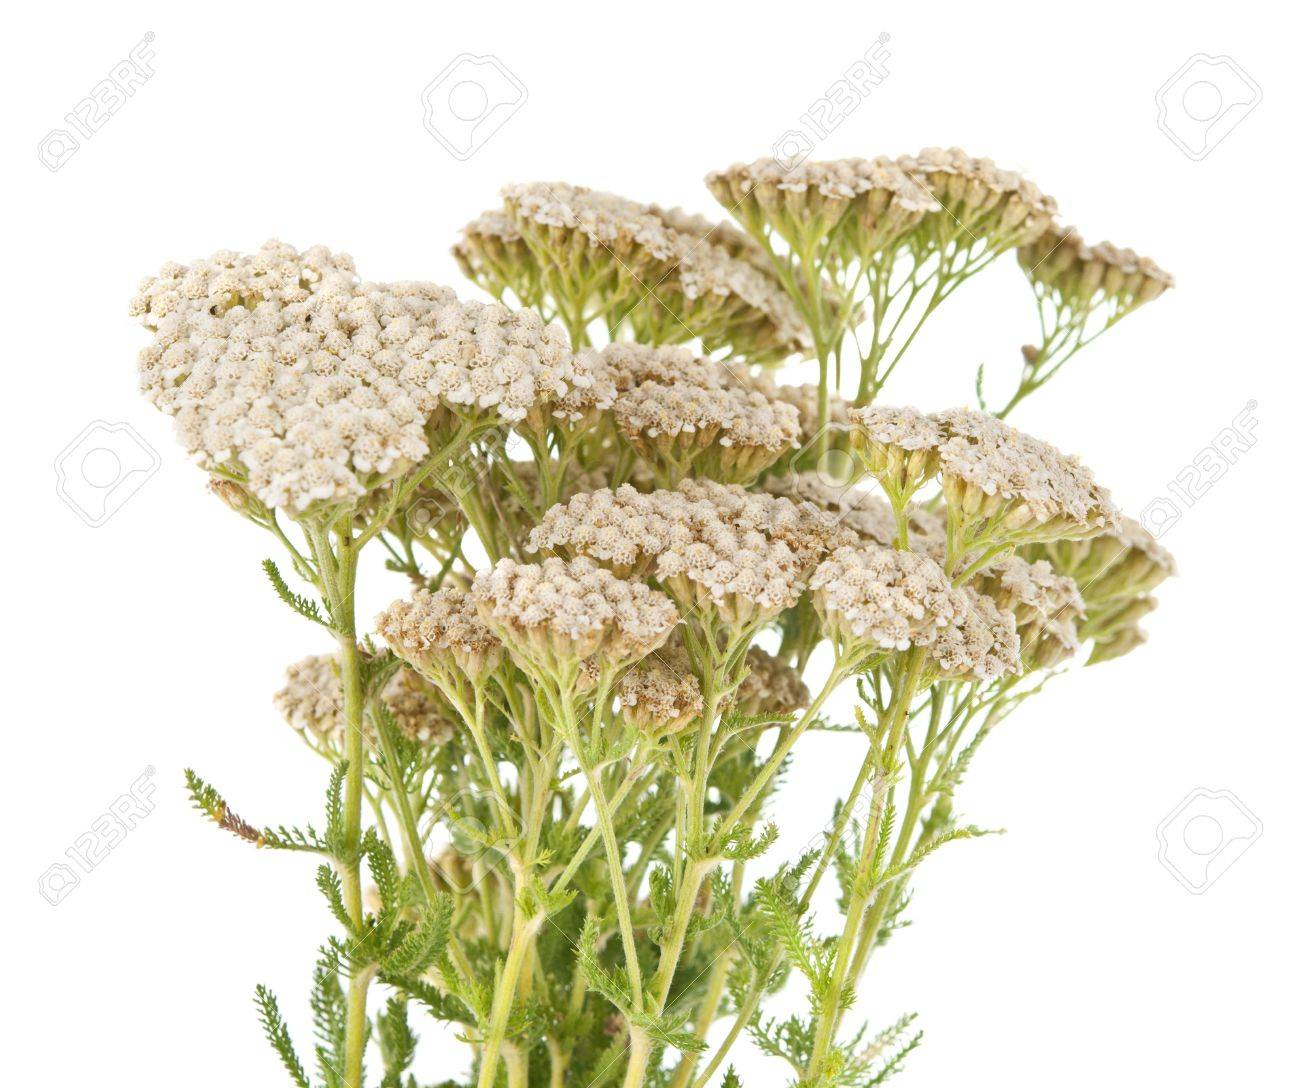 Yarrow herb isolated on white background Stock Photo - 14108391